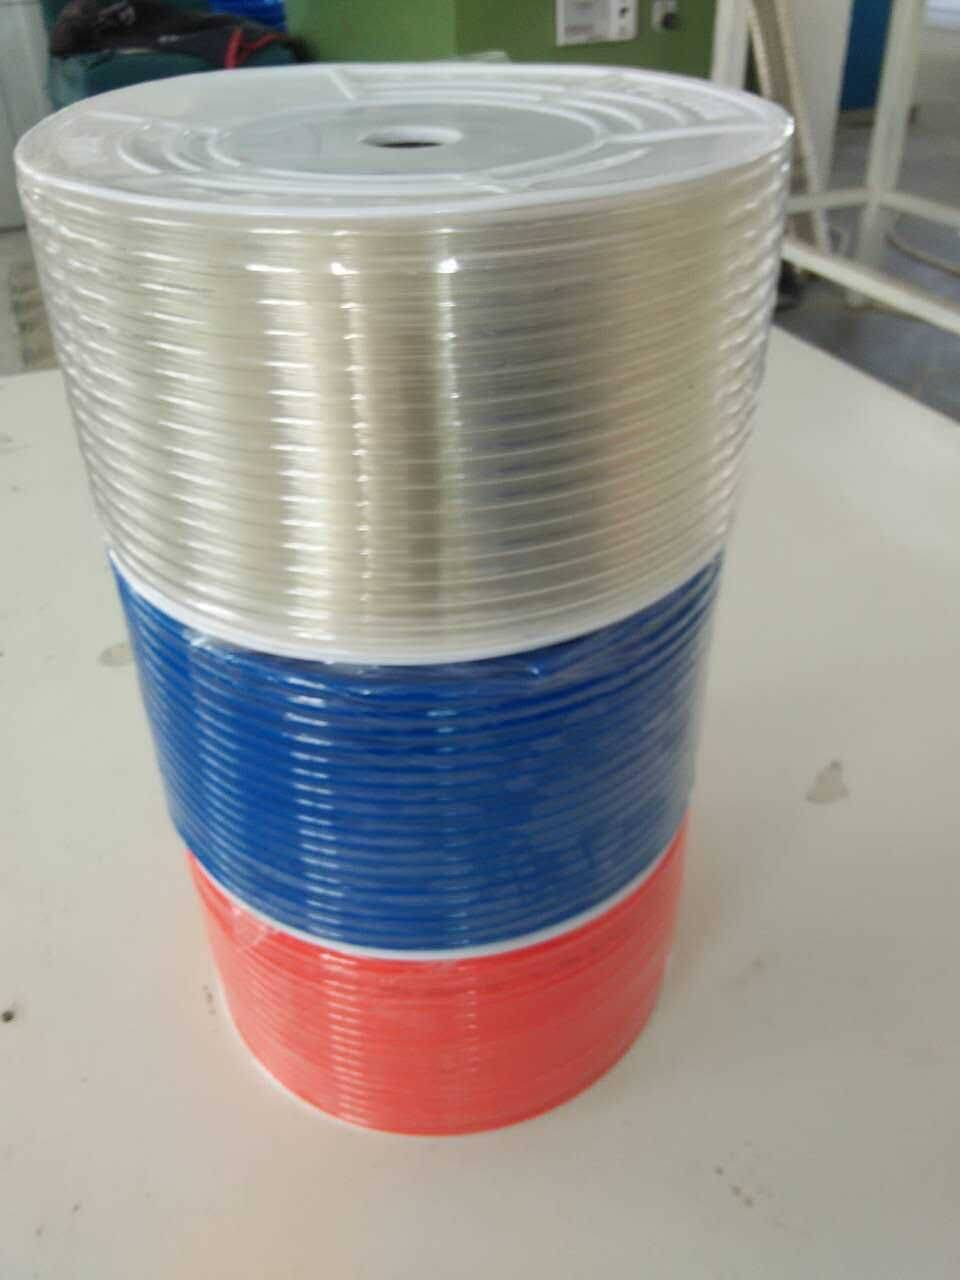 rubber hoses can be customized